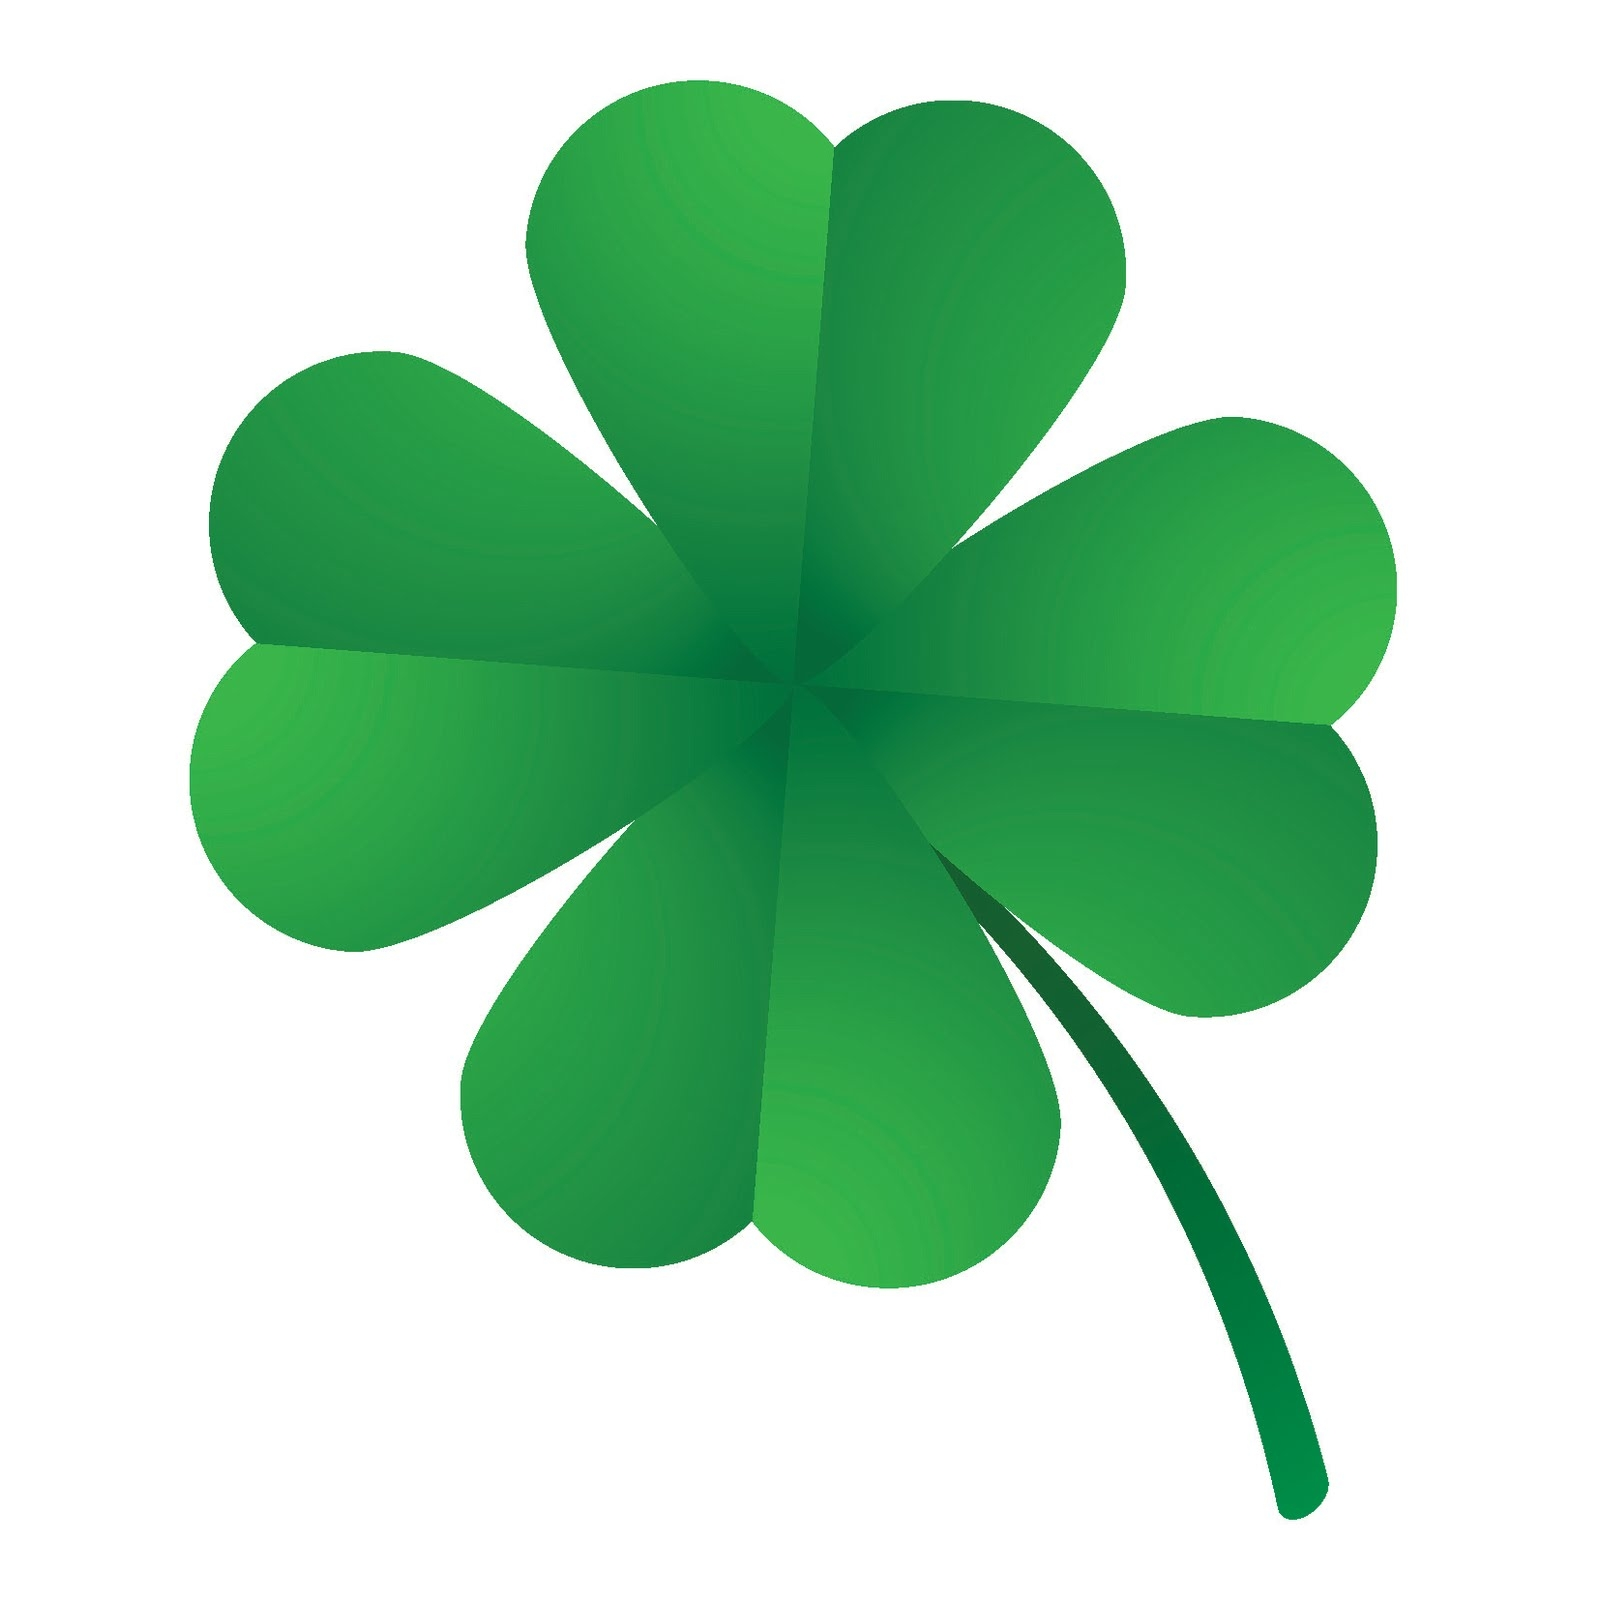 Best of four gallery. 3 clipart leaf clover